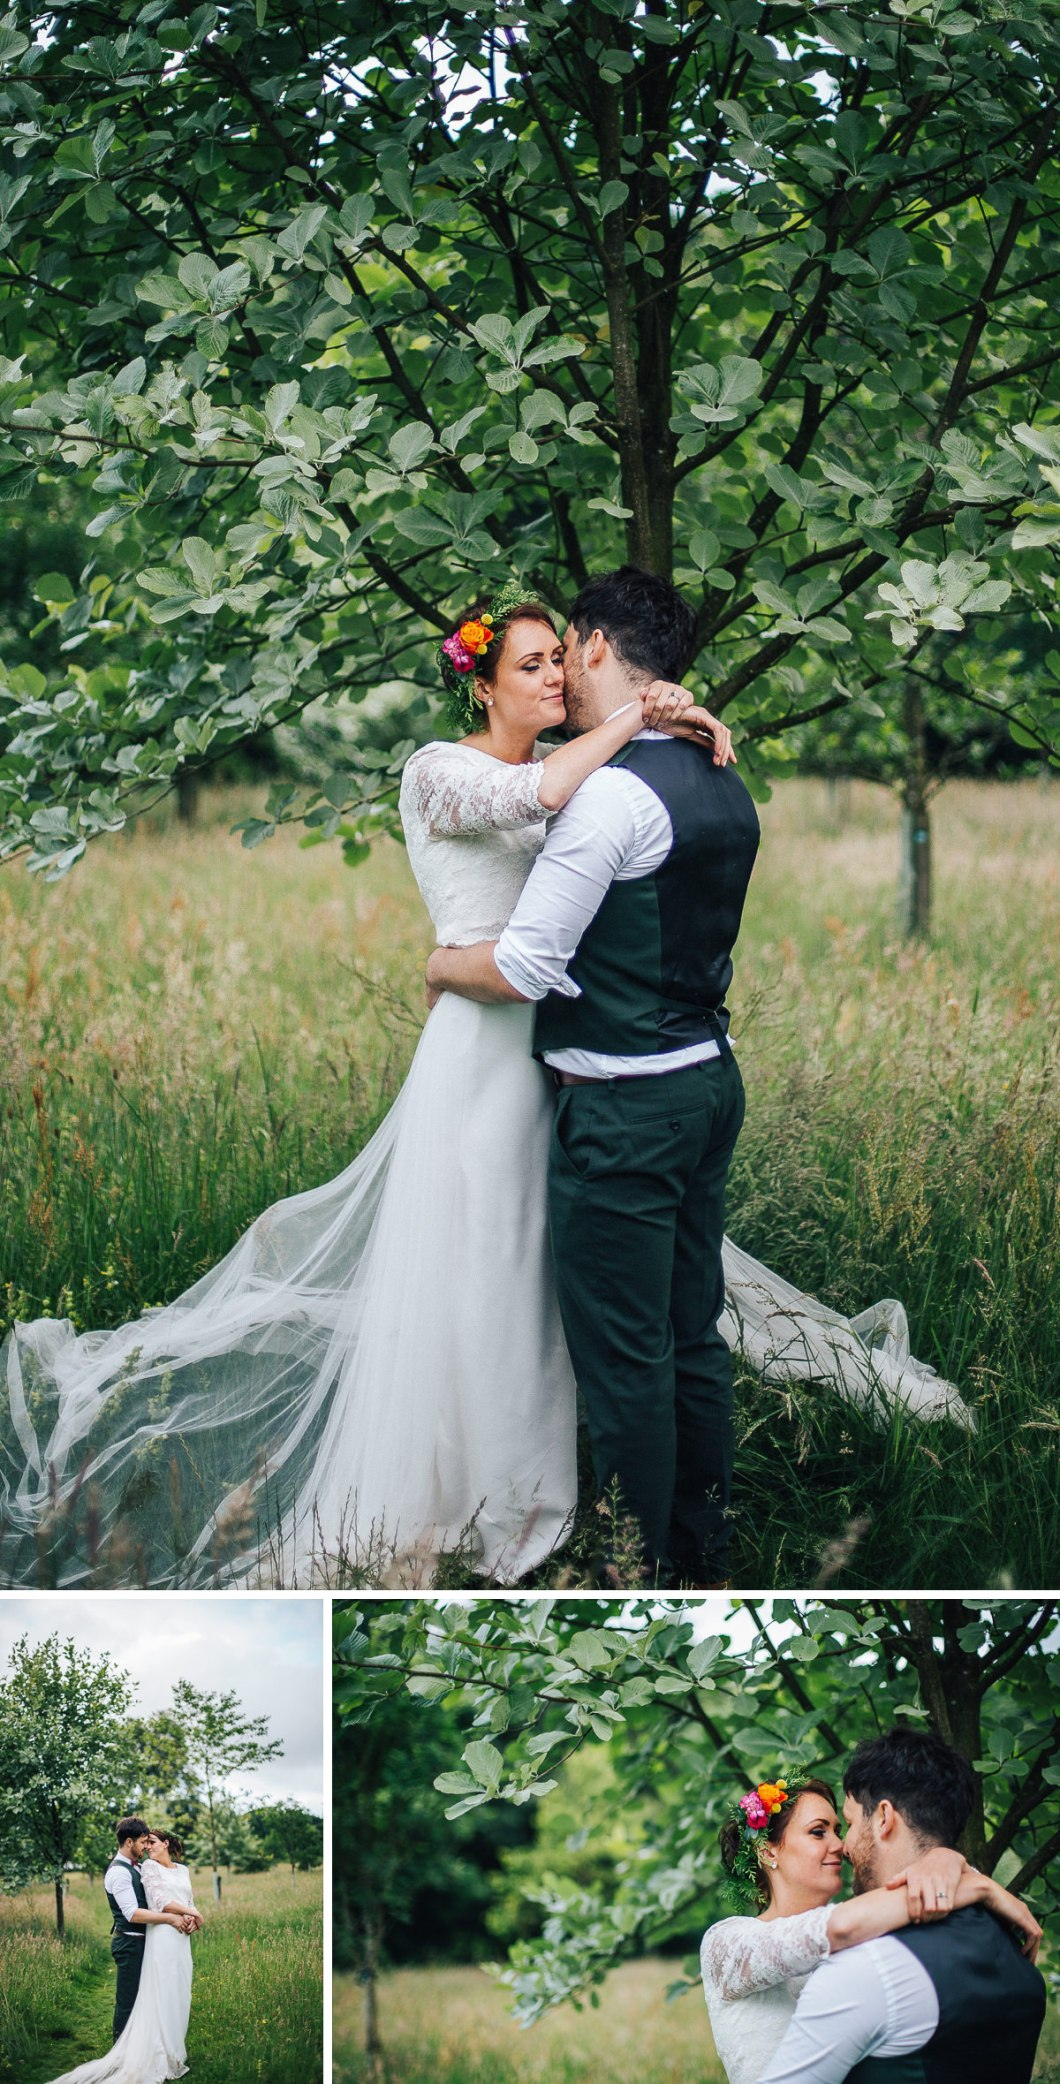 Beautiful wedding photography - Spring Cottafe Rivington